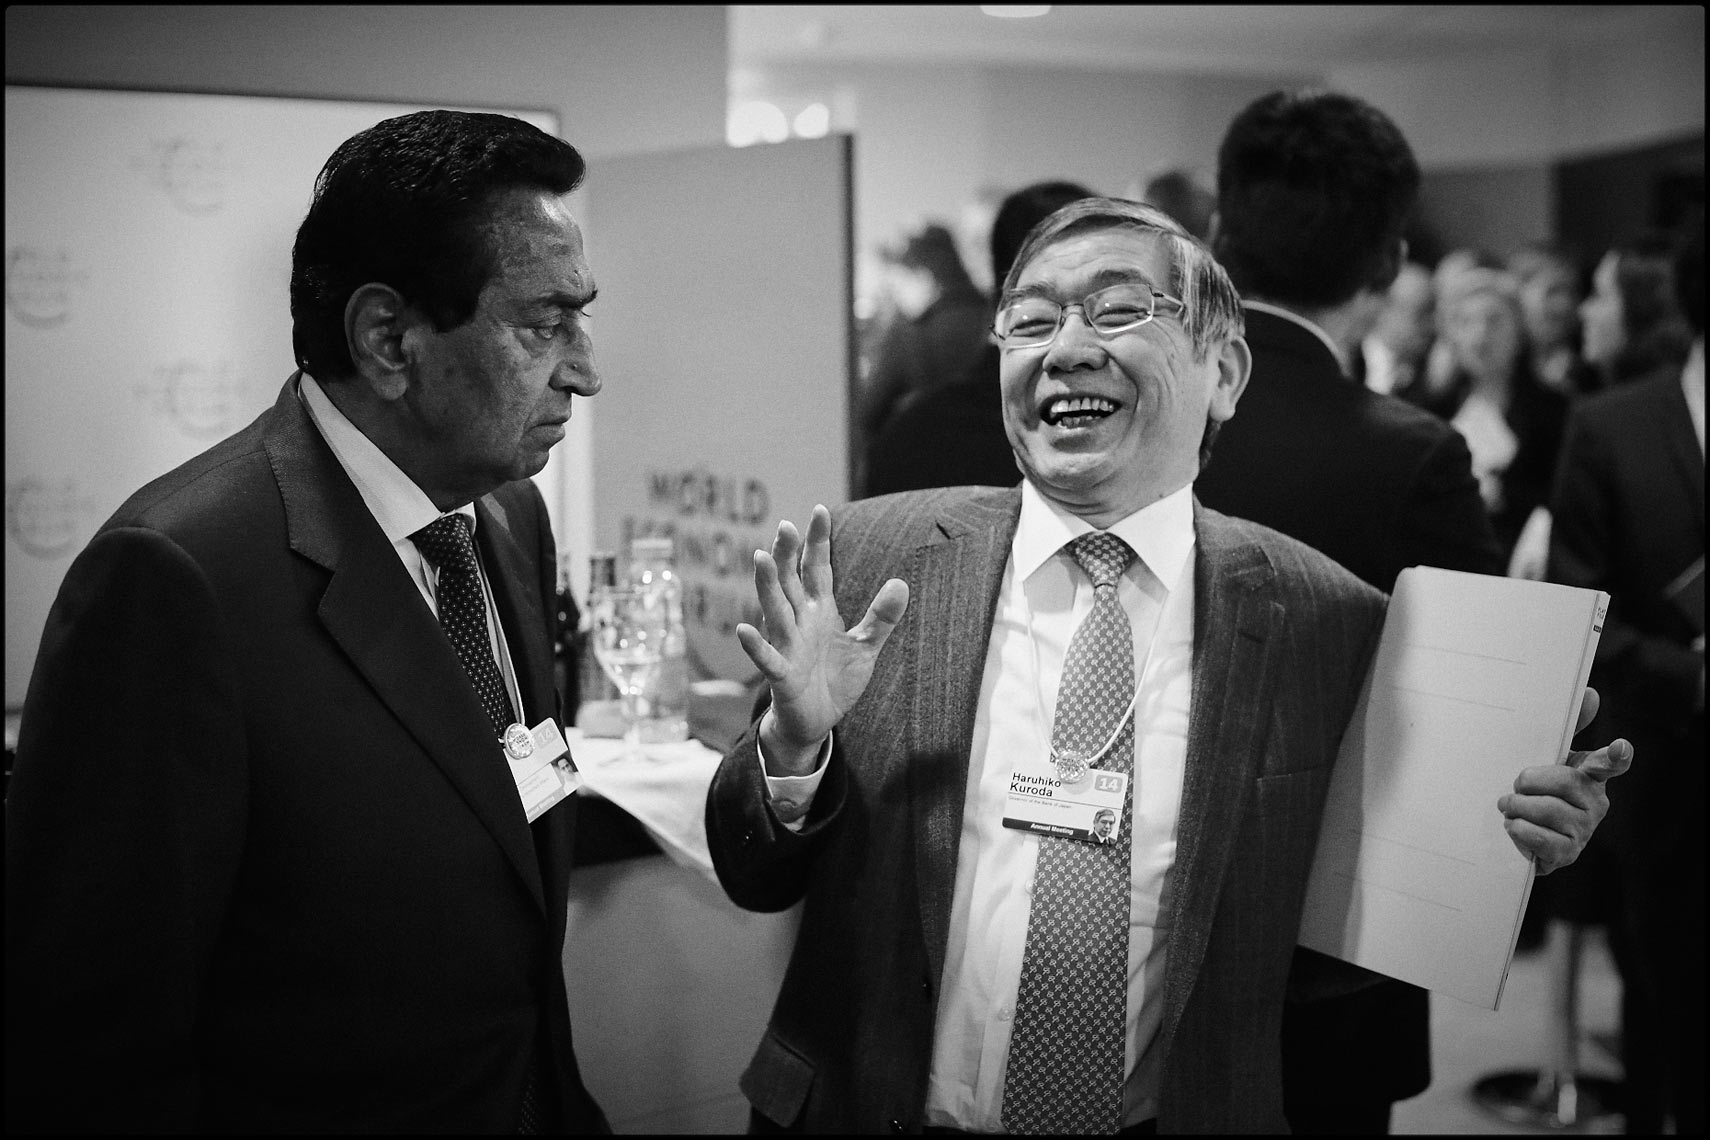 Japanese central bank chief Haruhiko Kuroda (R) and Kamal Nath leader of the Indian National Congress